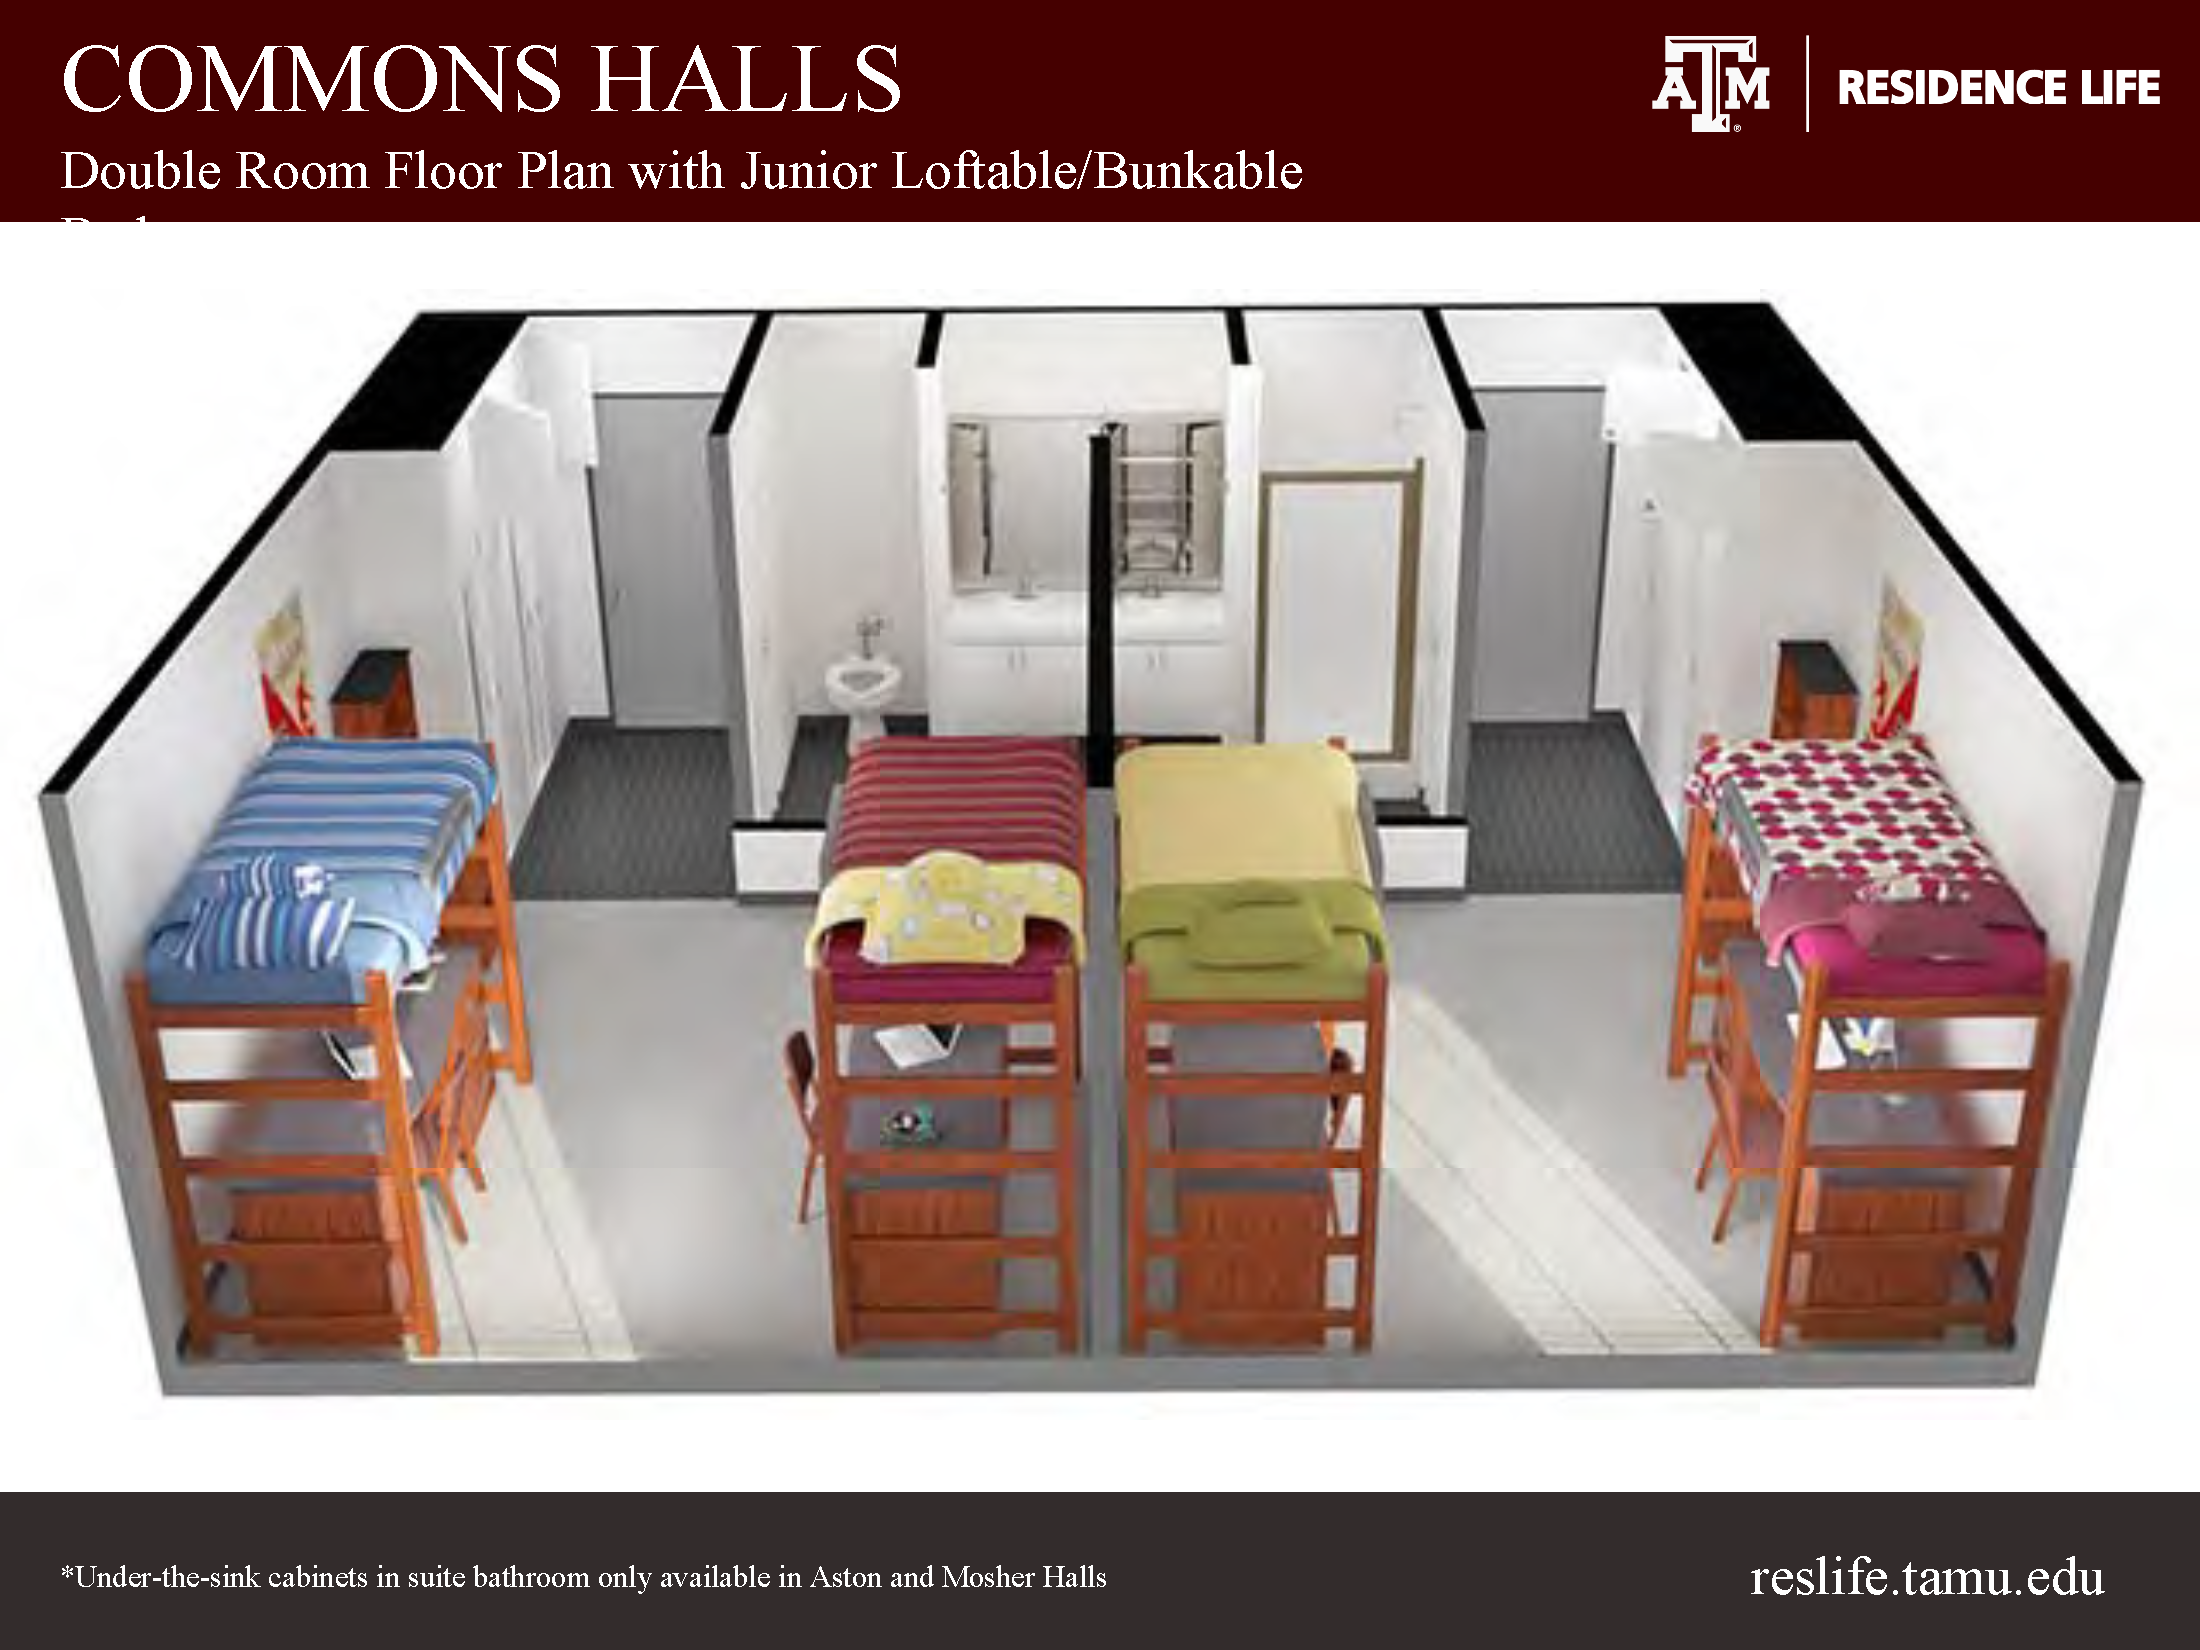 Side View of a 3-D Floor Plan, 4 closets, 2 sinks, shower stand, toilet, 4 beds, 4 storage units, 4 study tables, 4 study chairs